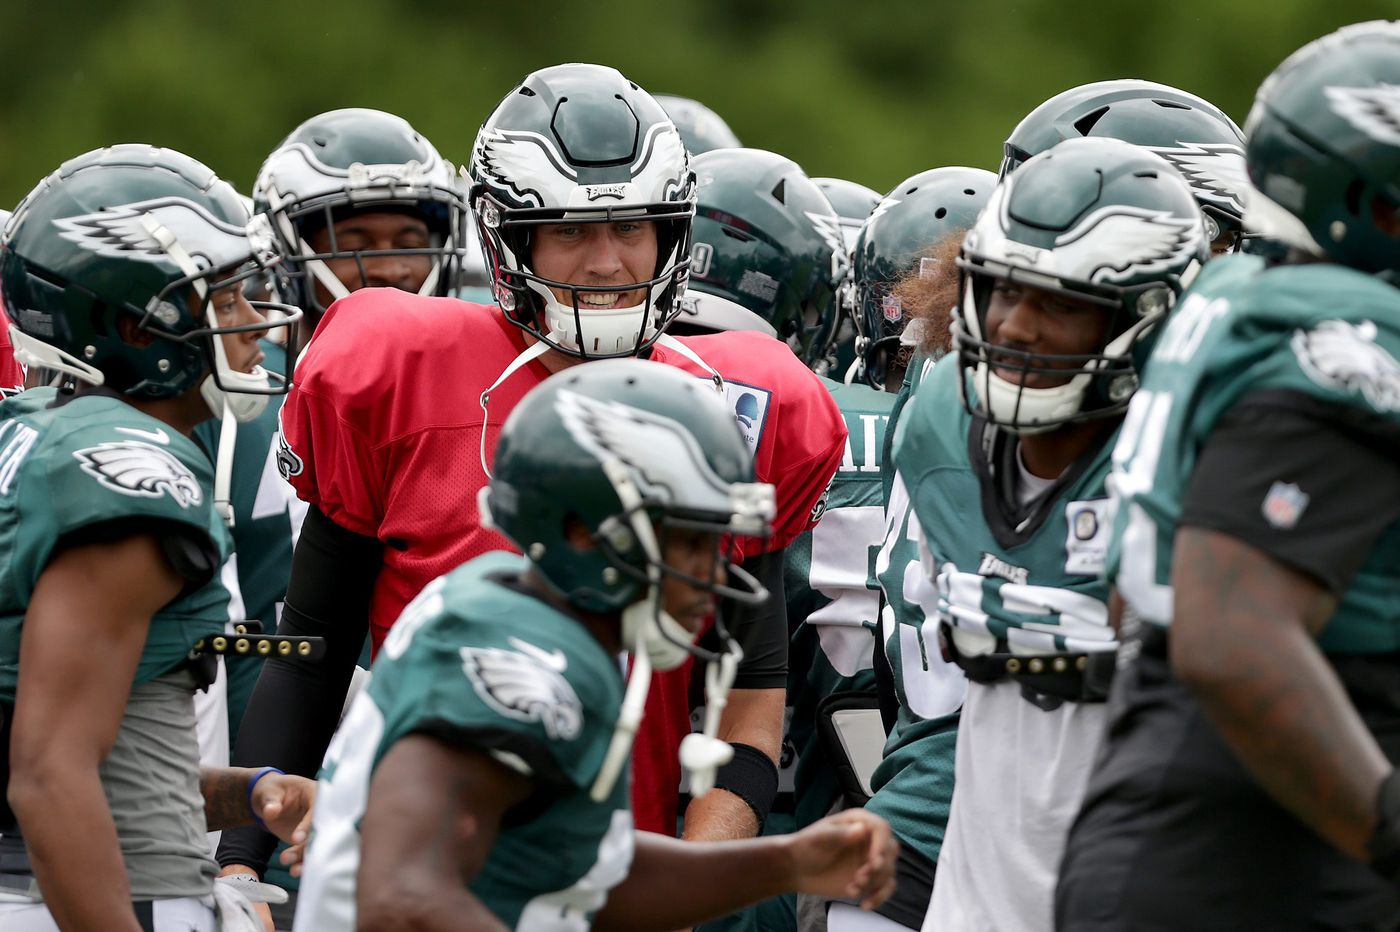 Eagles-Buccaneers: Our beat writers' predictions